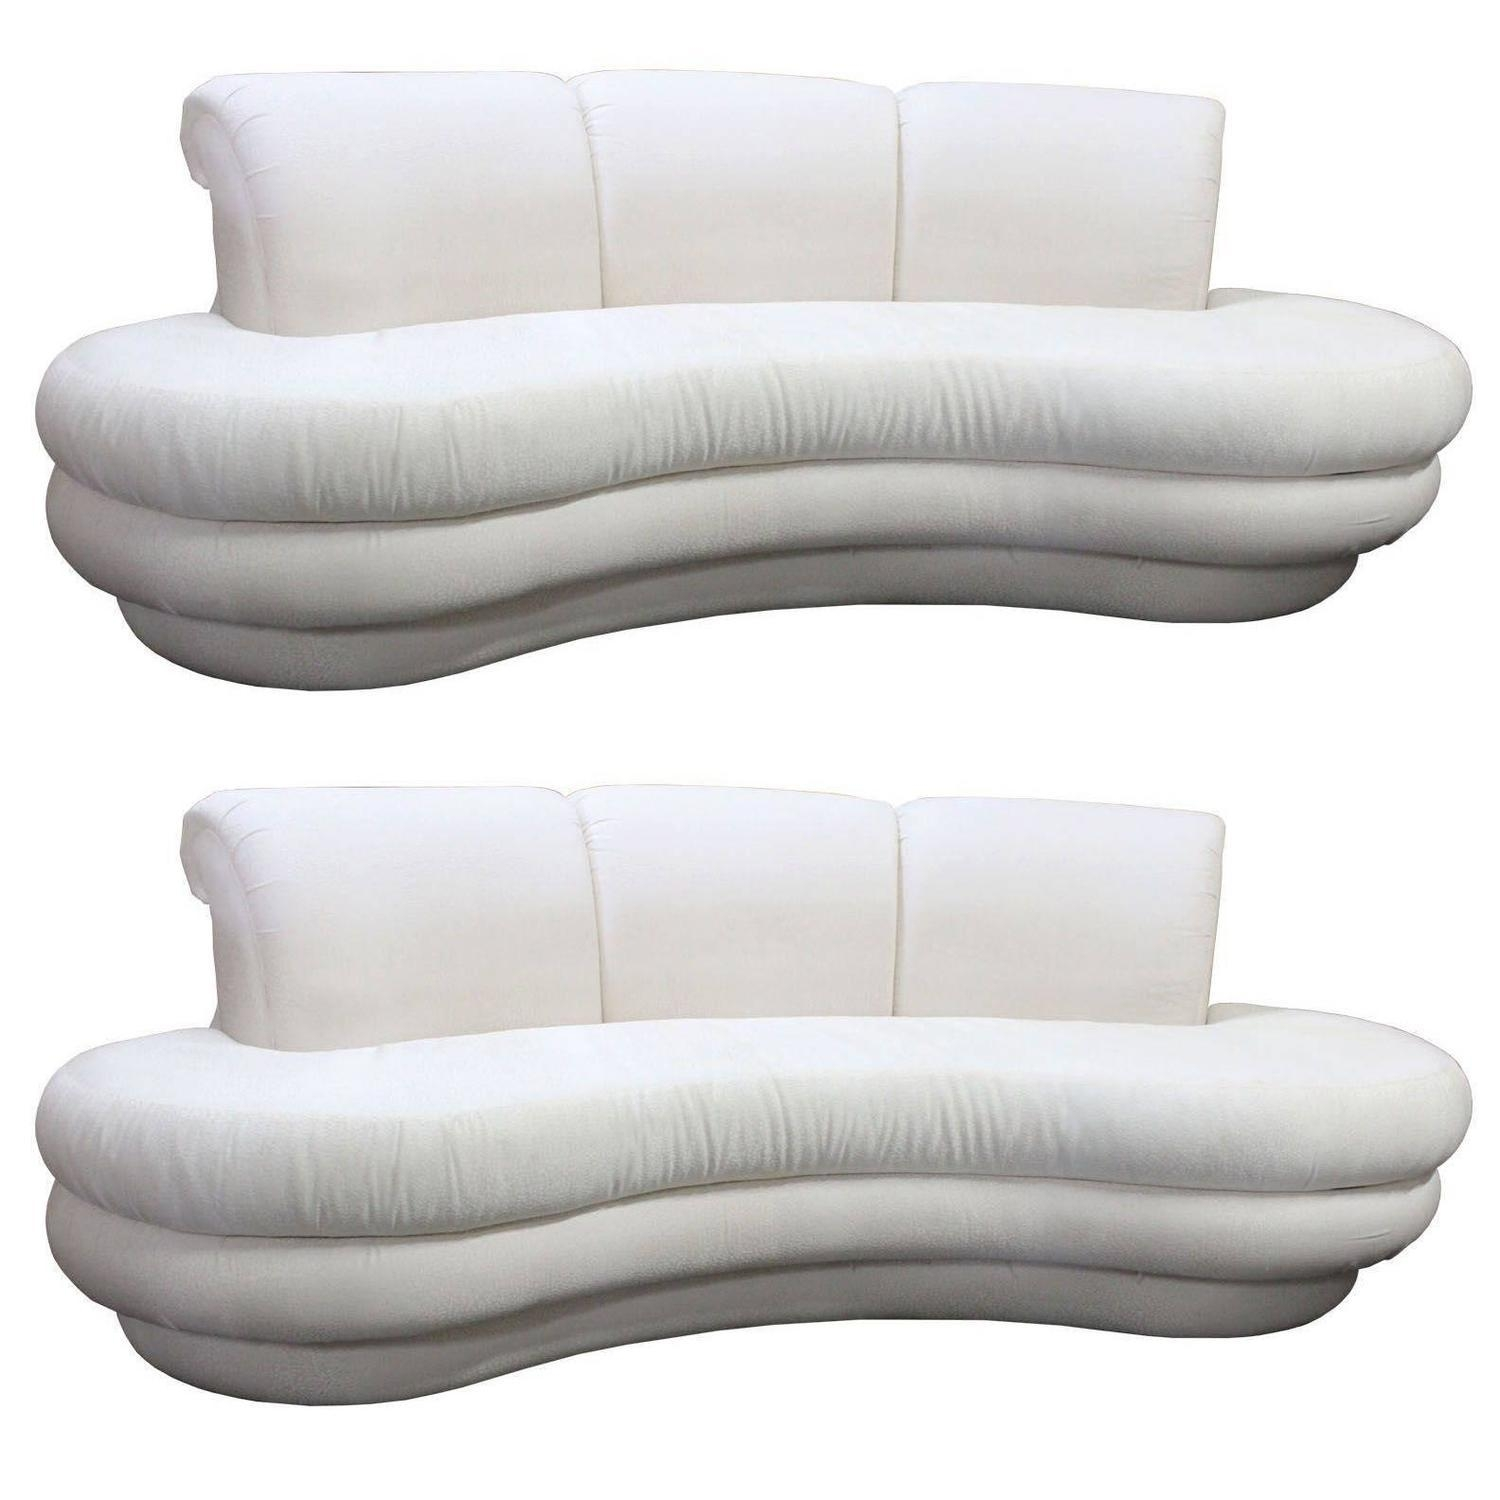 Adrian Pearsall Sofas – 64 For Sale At 1Stdibs Pertaining To Floating Cloud Couches (Image 5 of 21)